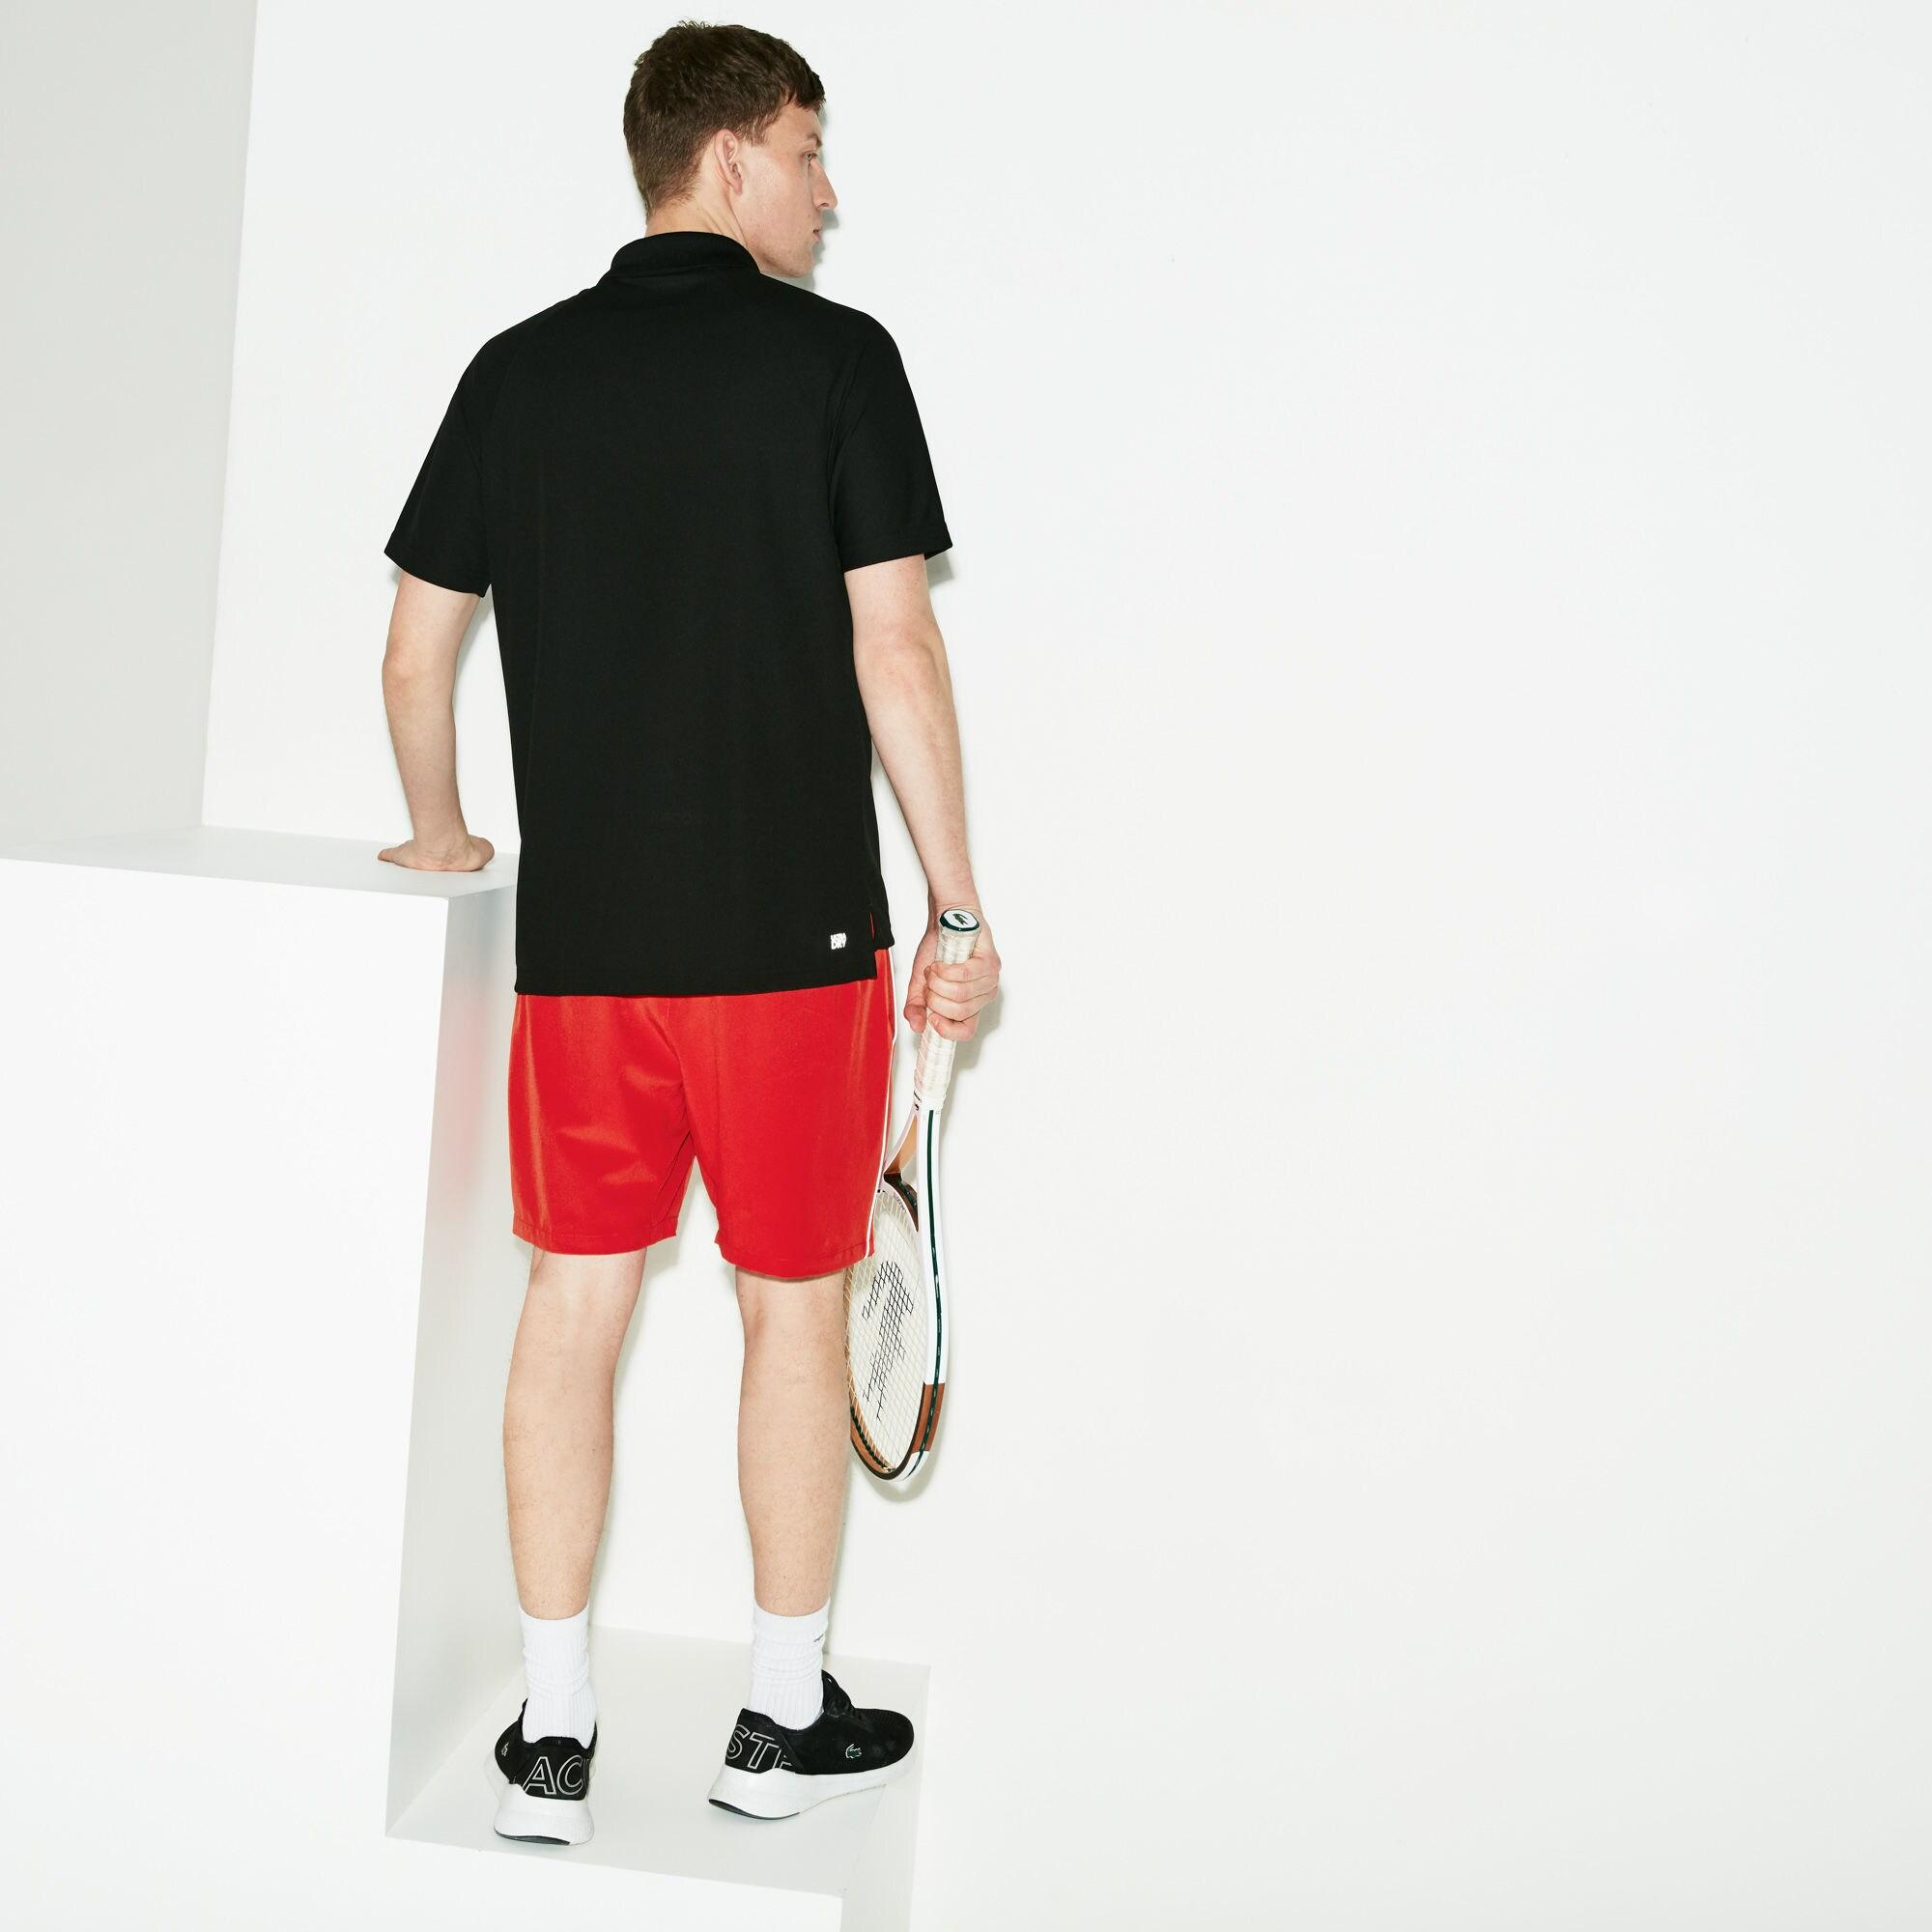 125db4524 Lacoste - Blue Sport Novak Djokovic Support With Style Collection Piped  Stretch Technical Shorts for Men. View fullscreen